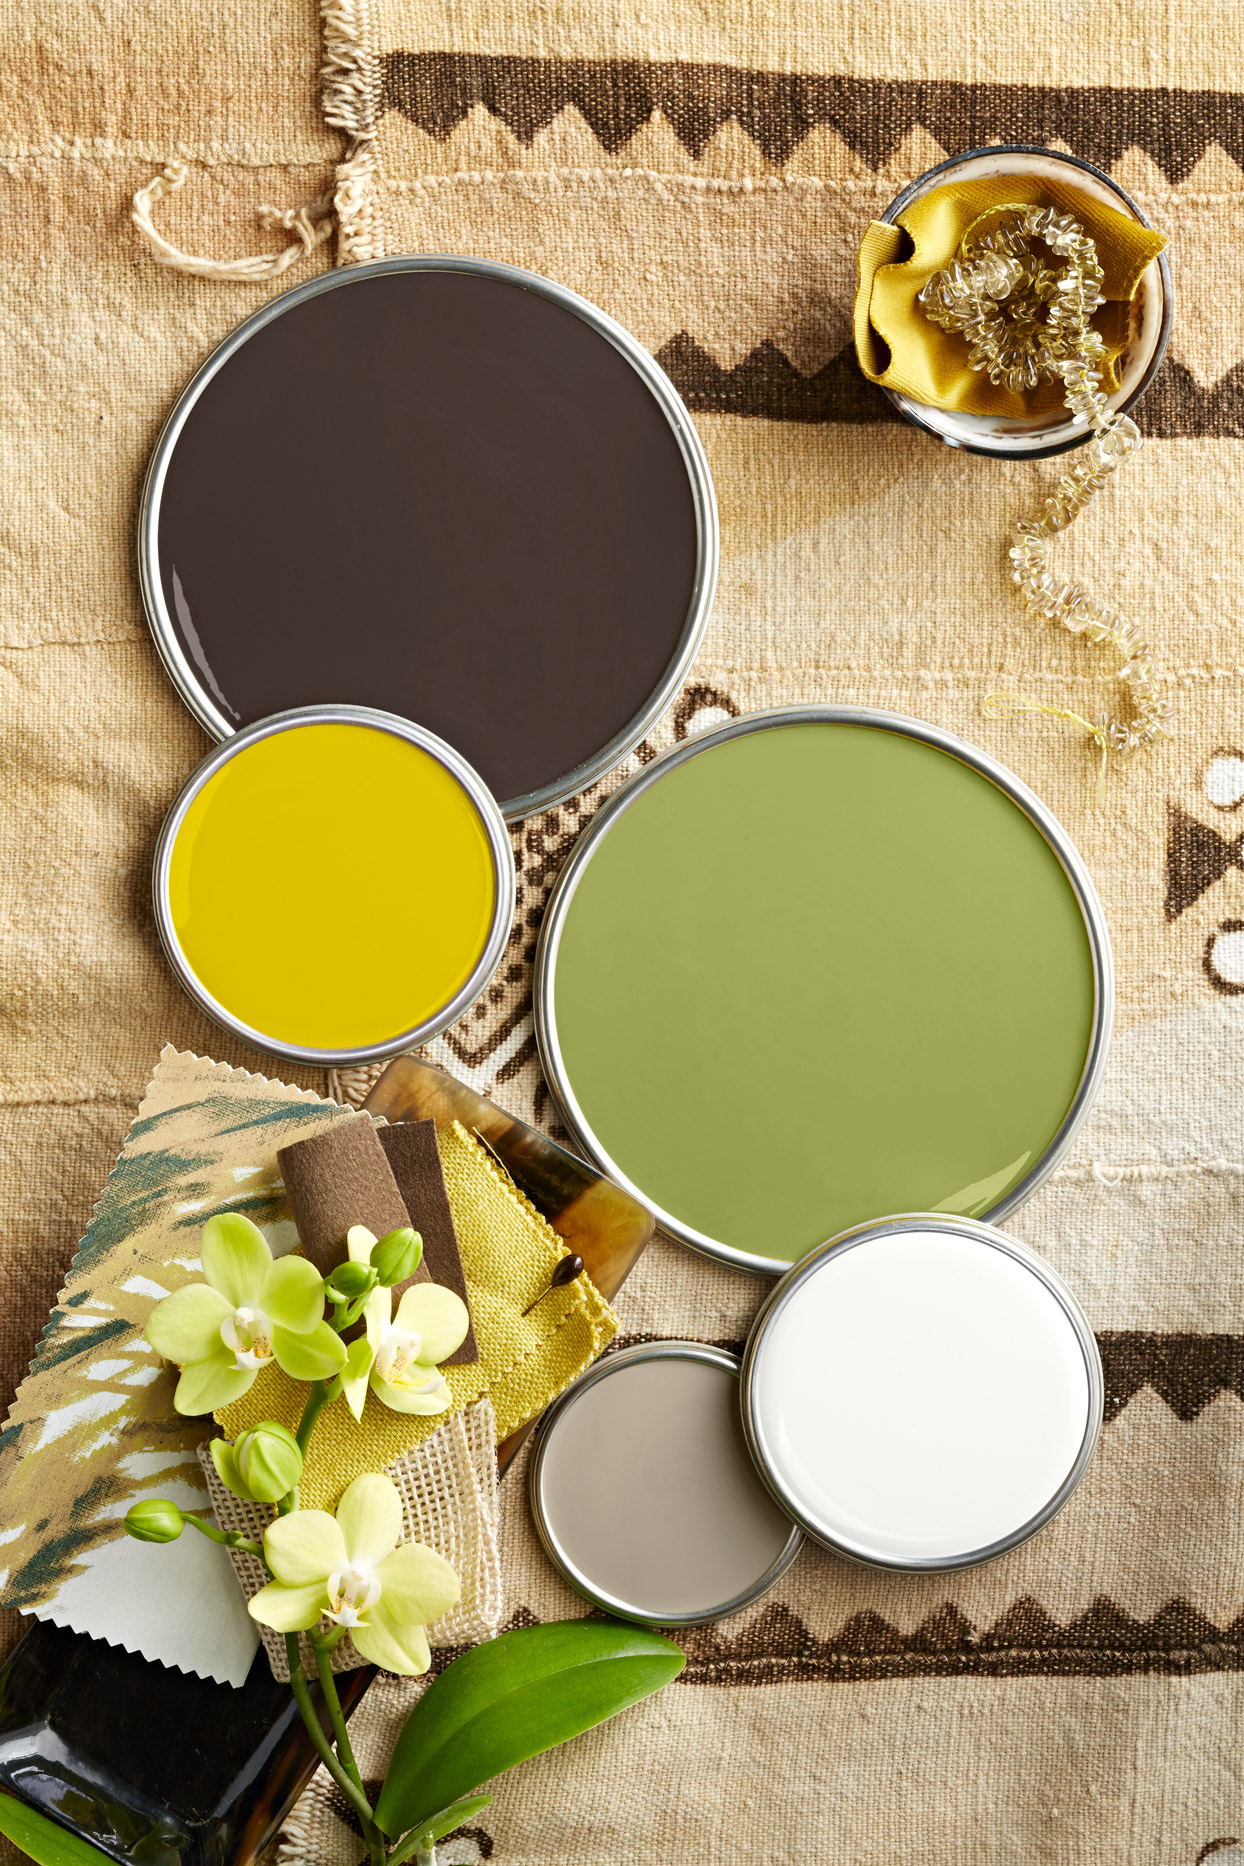 Green black and tan paint lids